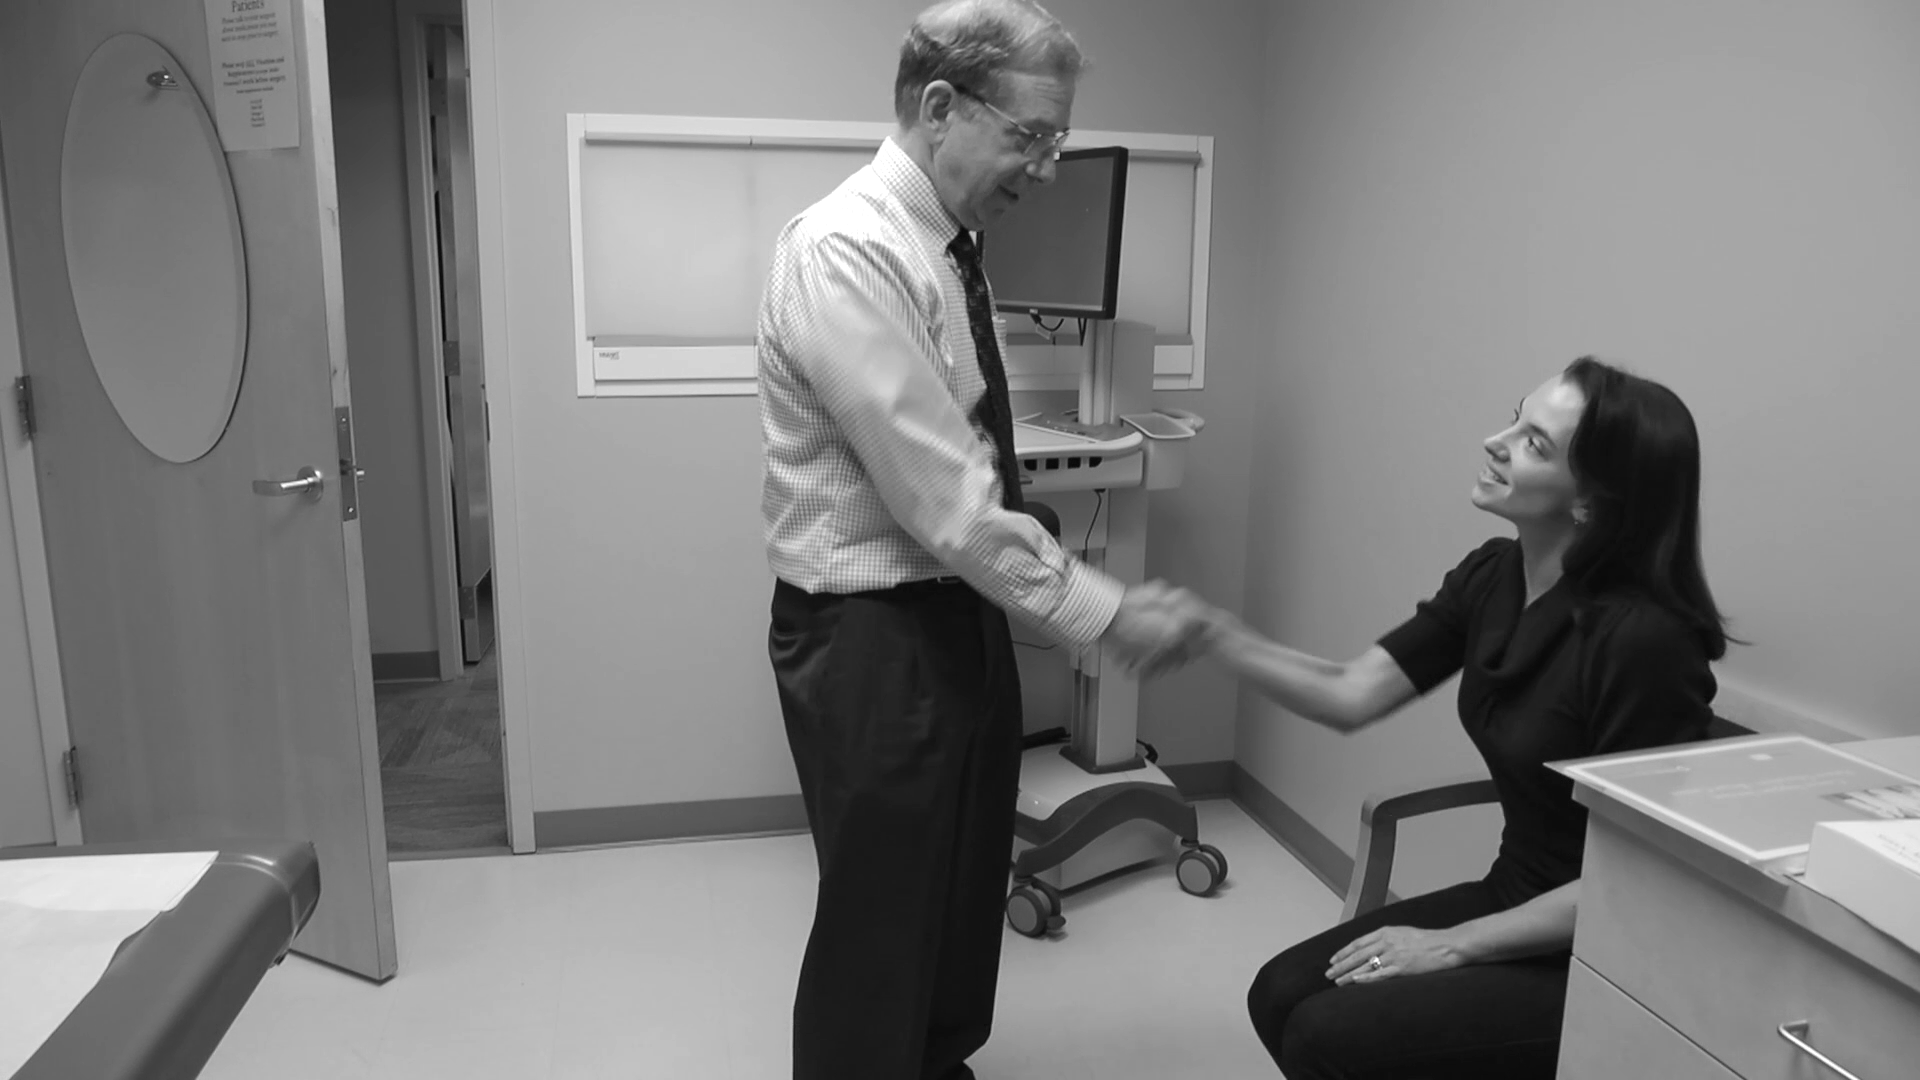 Dr. Clarfeld talks about his practice